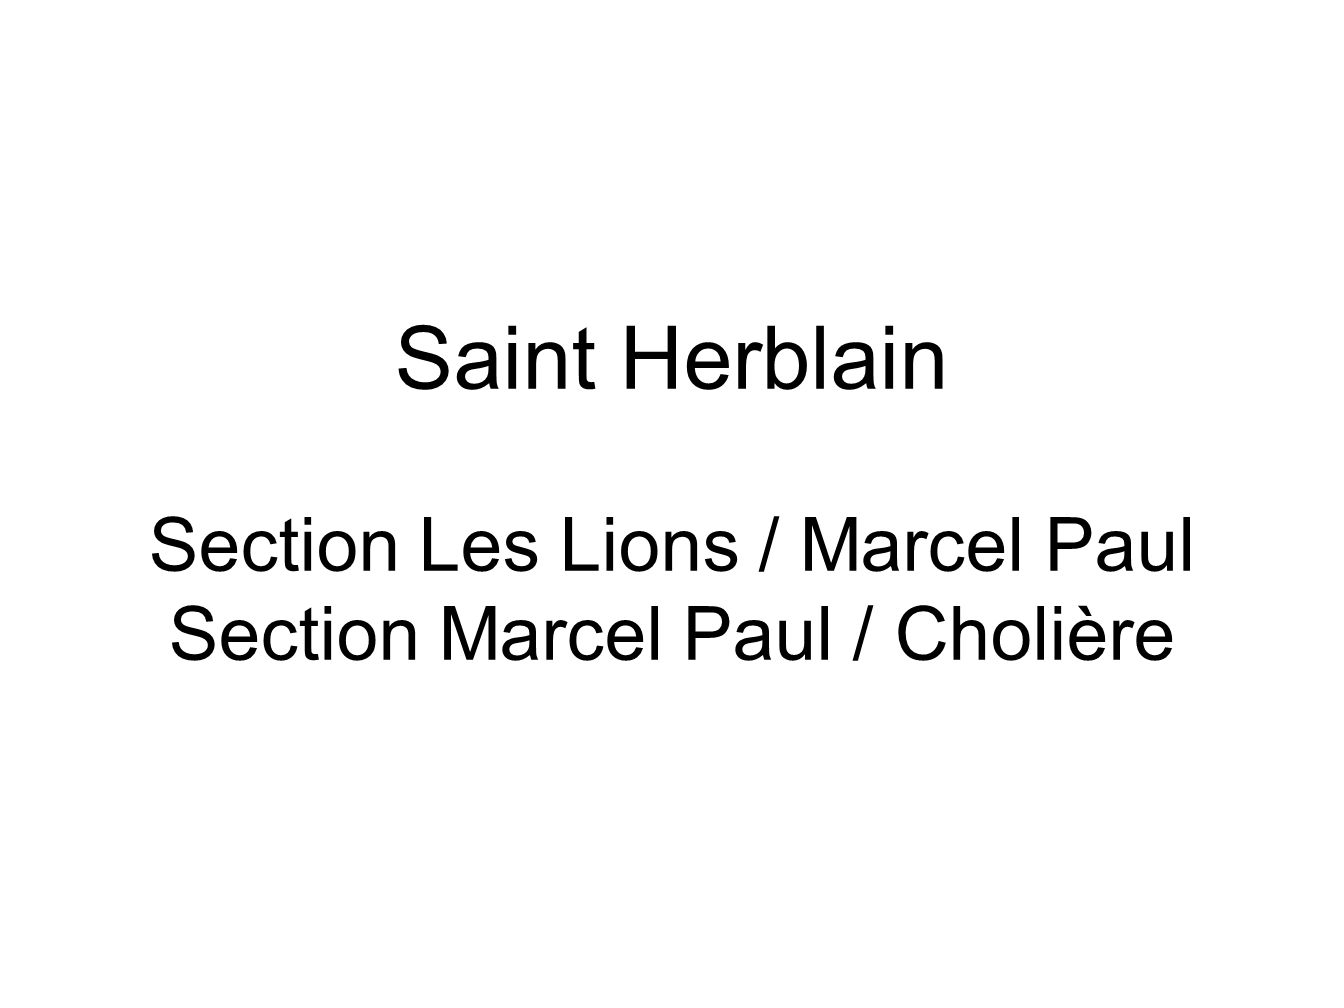 Saint Herblain Section Les Lions / Marcel Paul Section Marcel Paul / Cholière